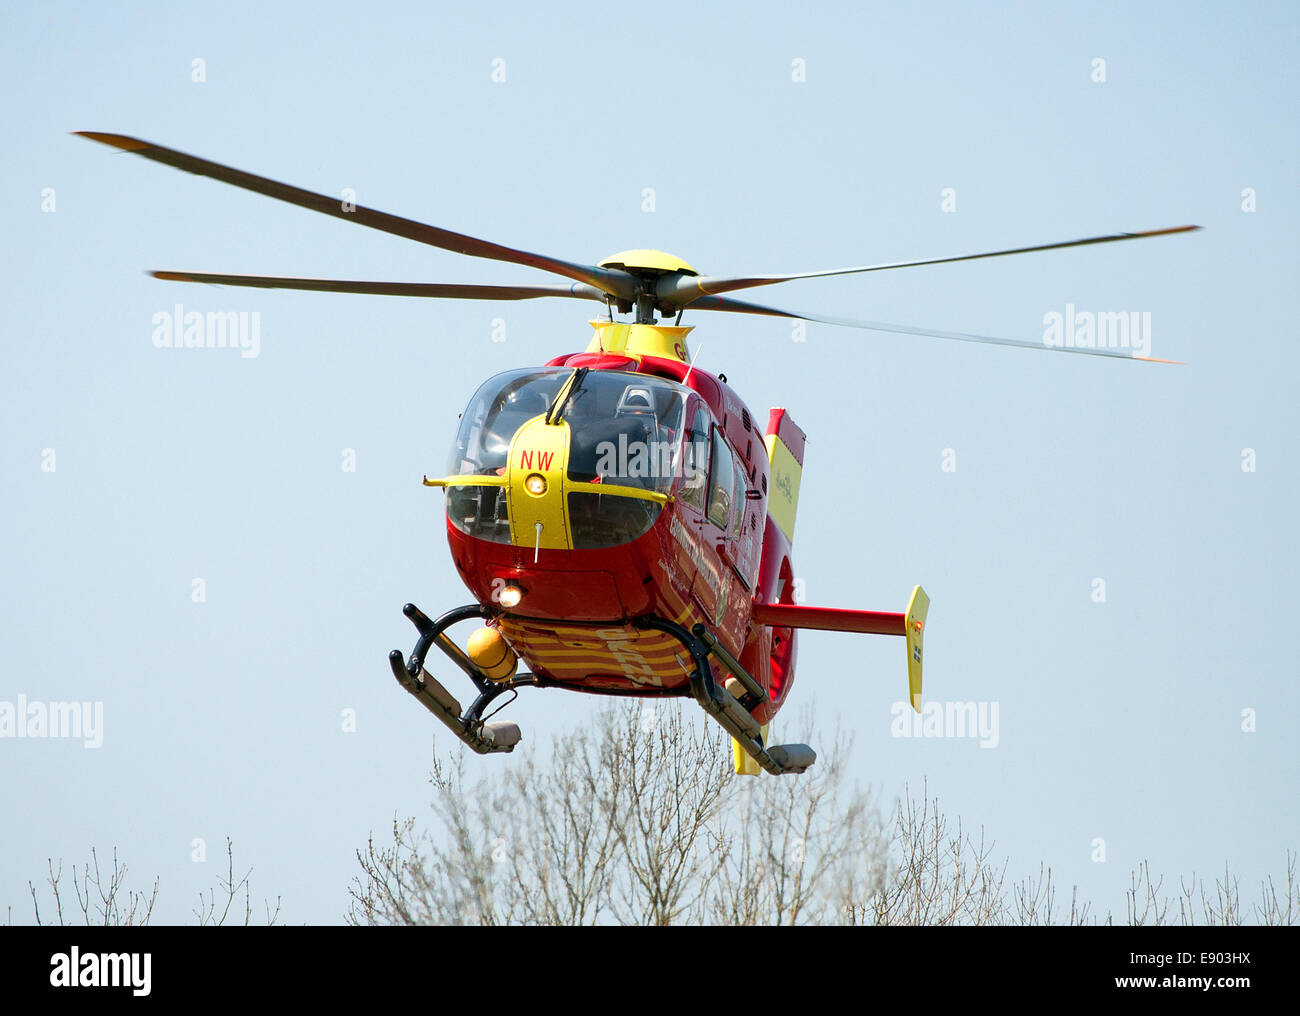 The Cornwall Air Ambulance in flight - Stock Image